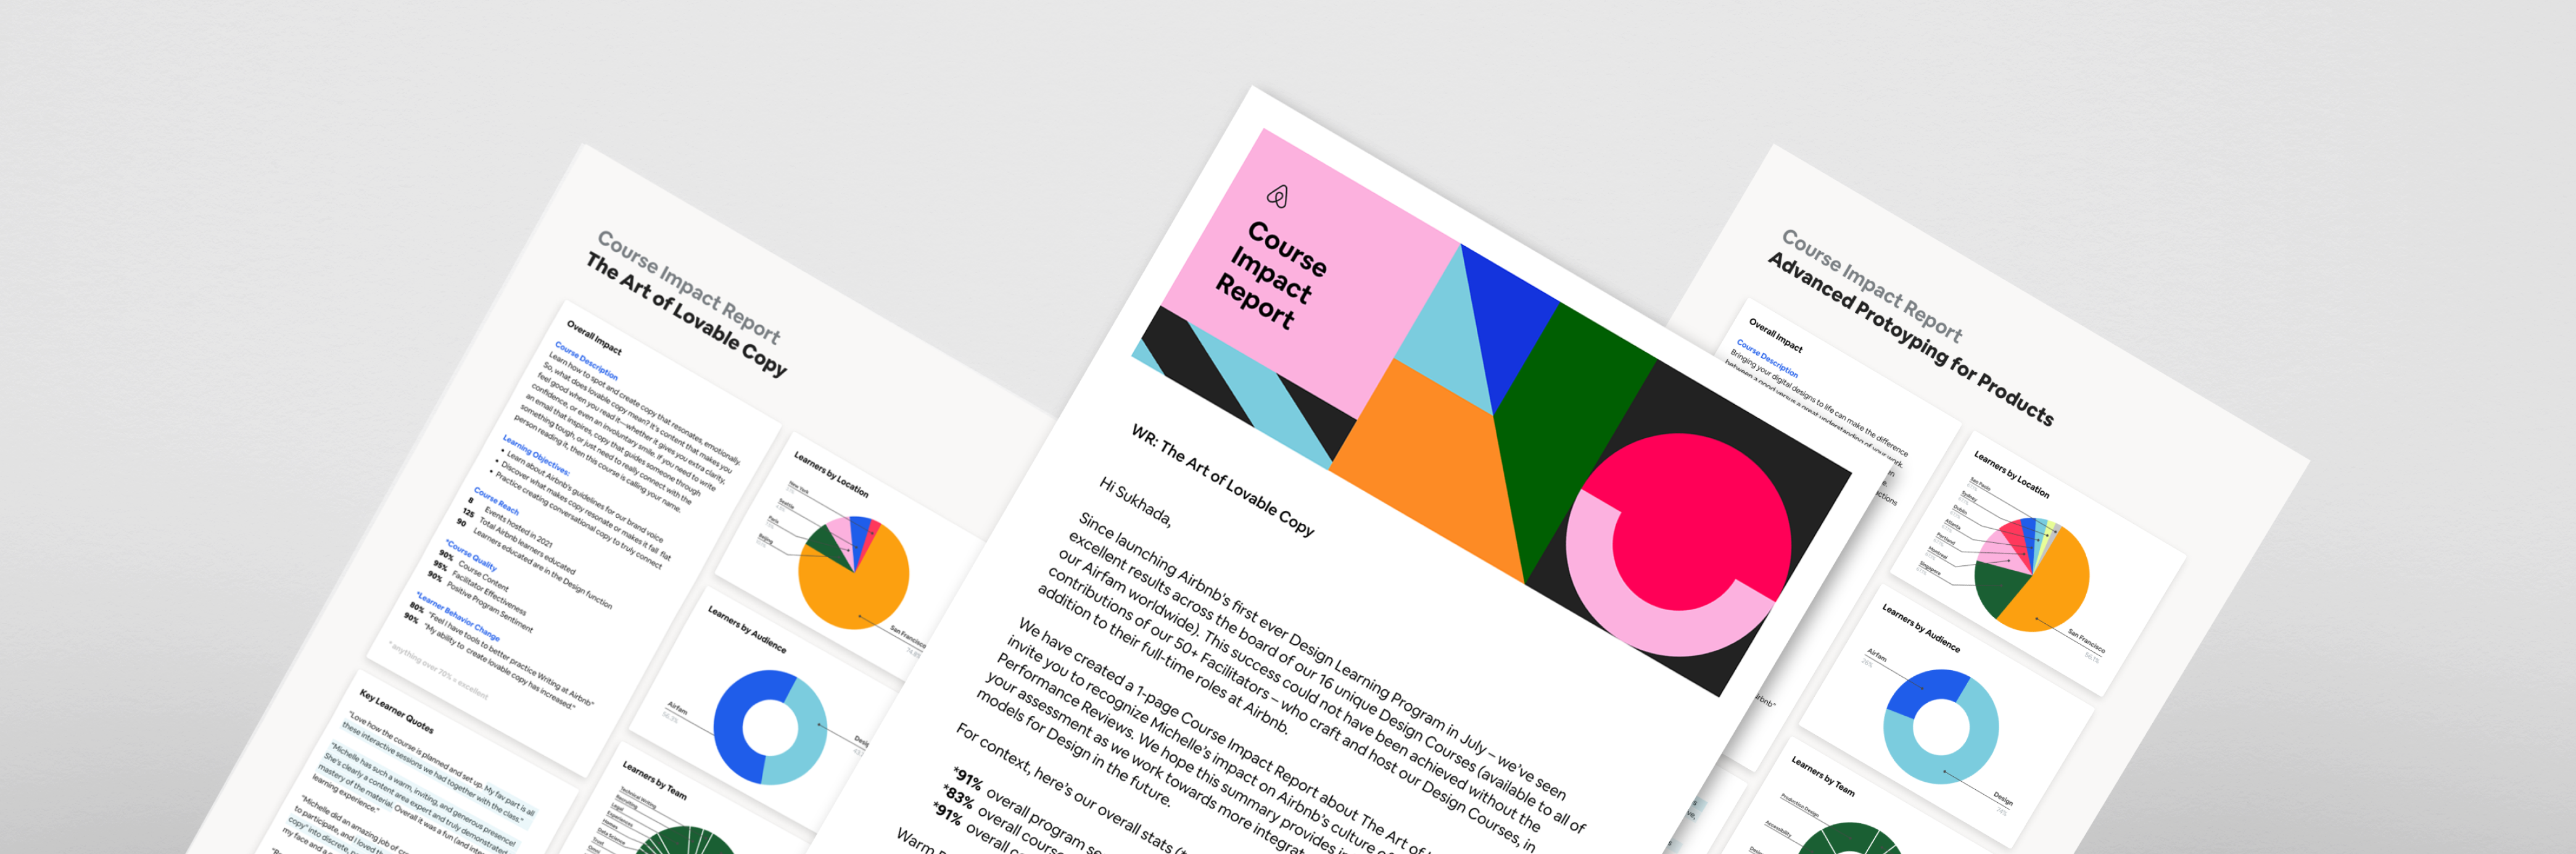 Impact reports for Airbnb Design Learning program